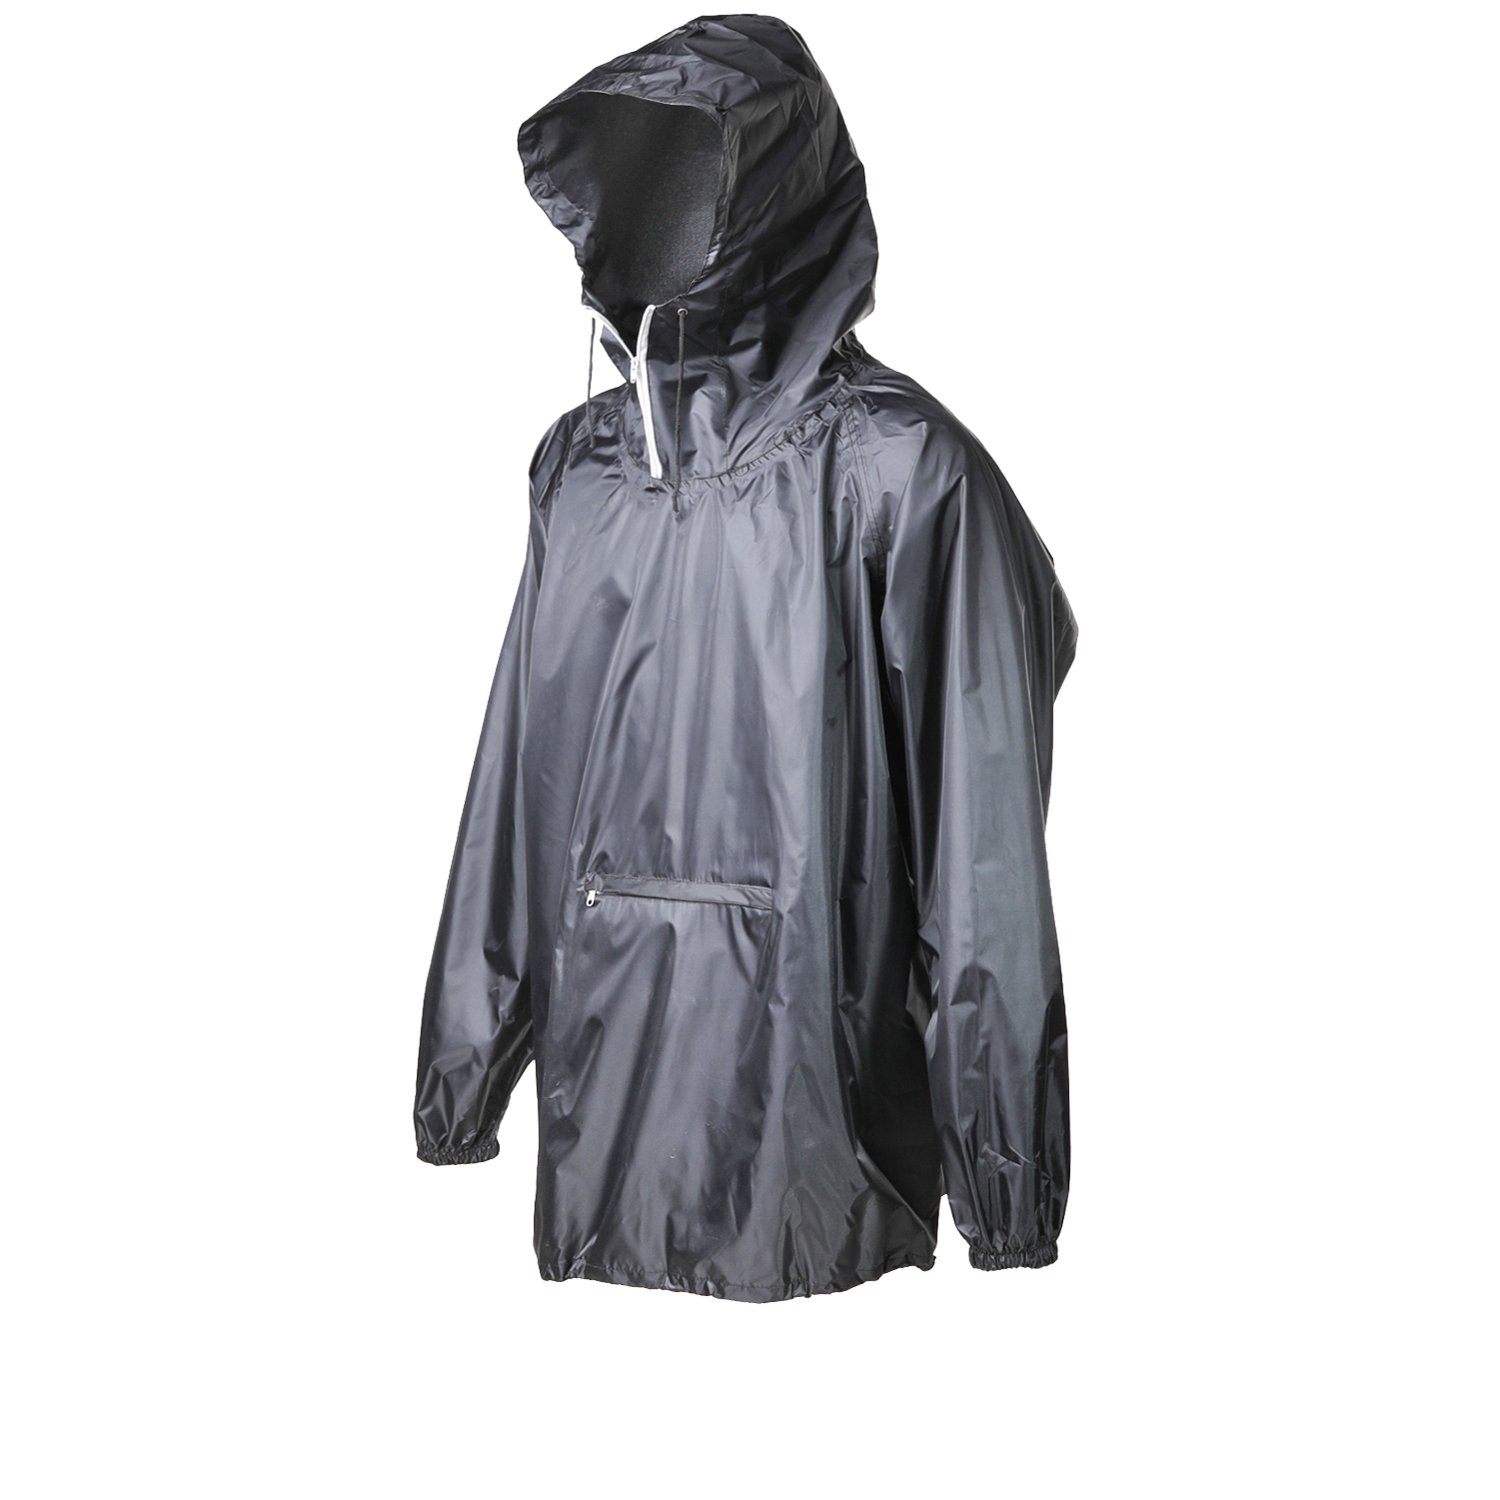 4ucycling Raincoat Outdoor Updated Version